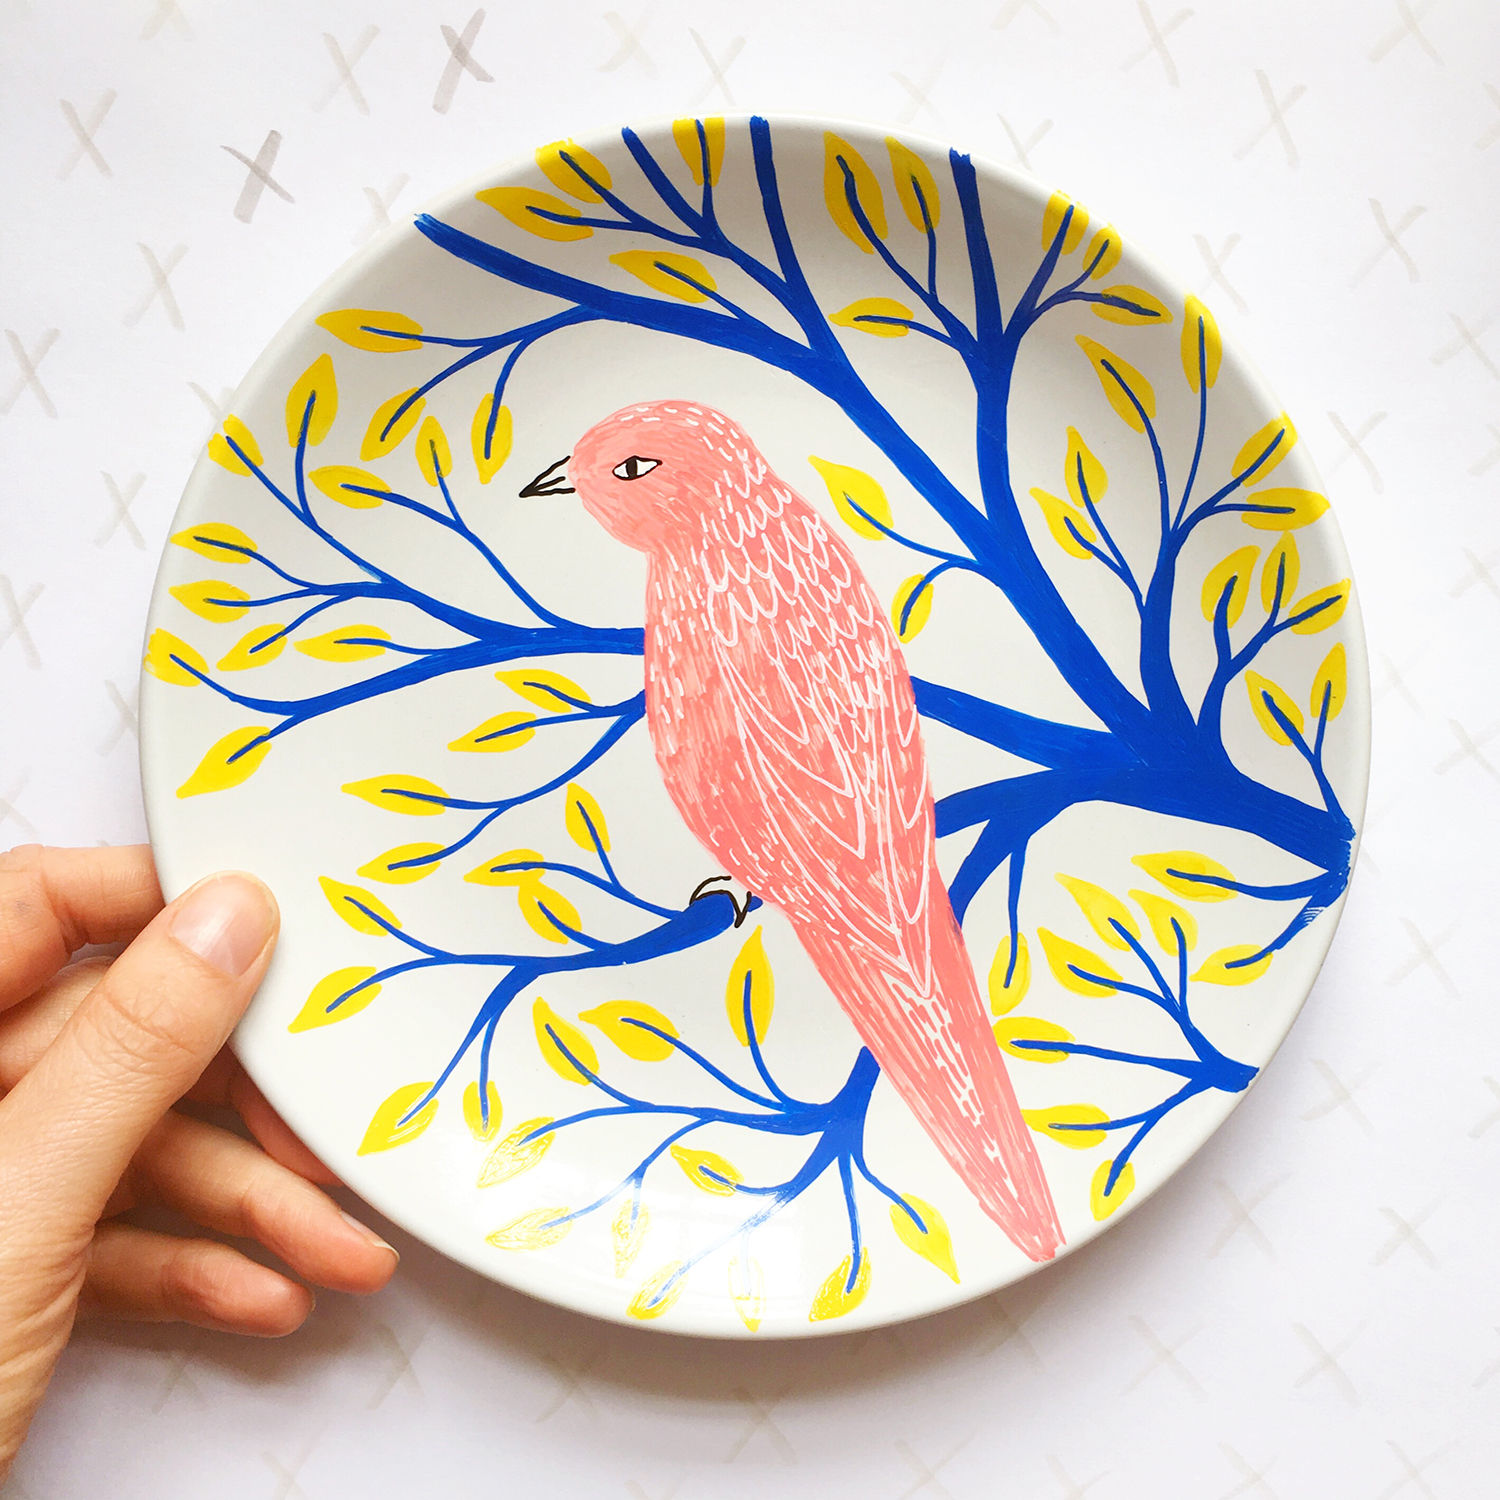 Hand Painted Bird Plate · Lee Foster-Wilson